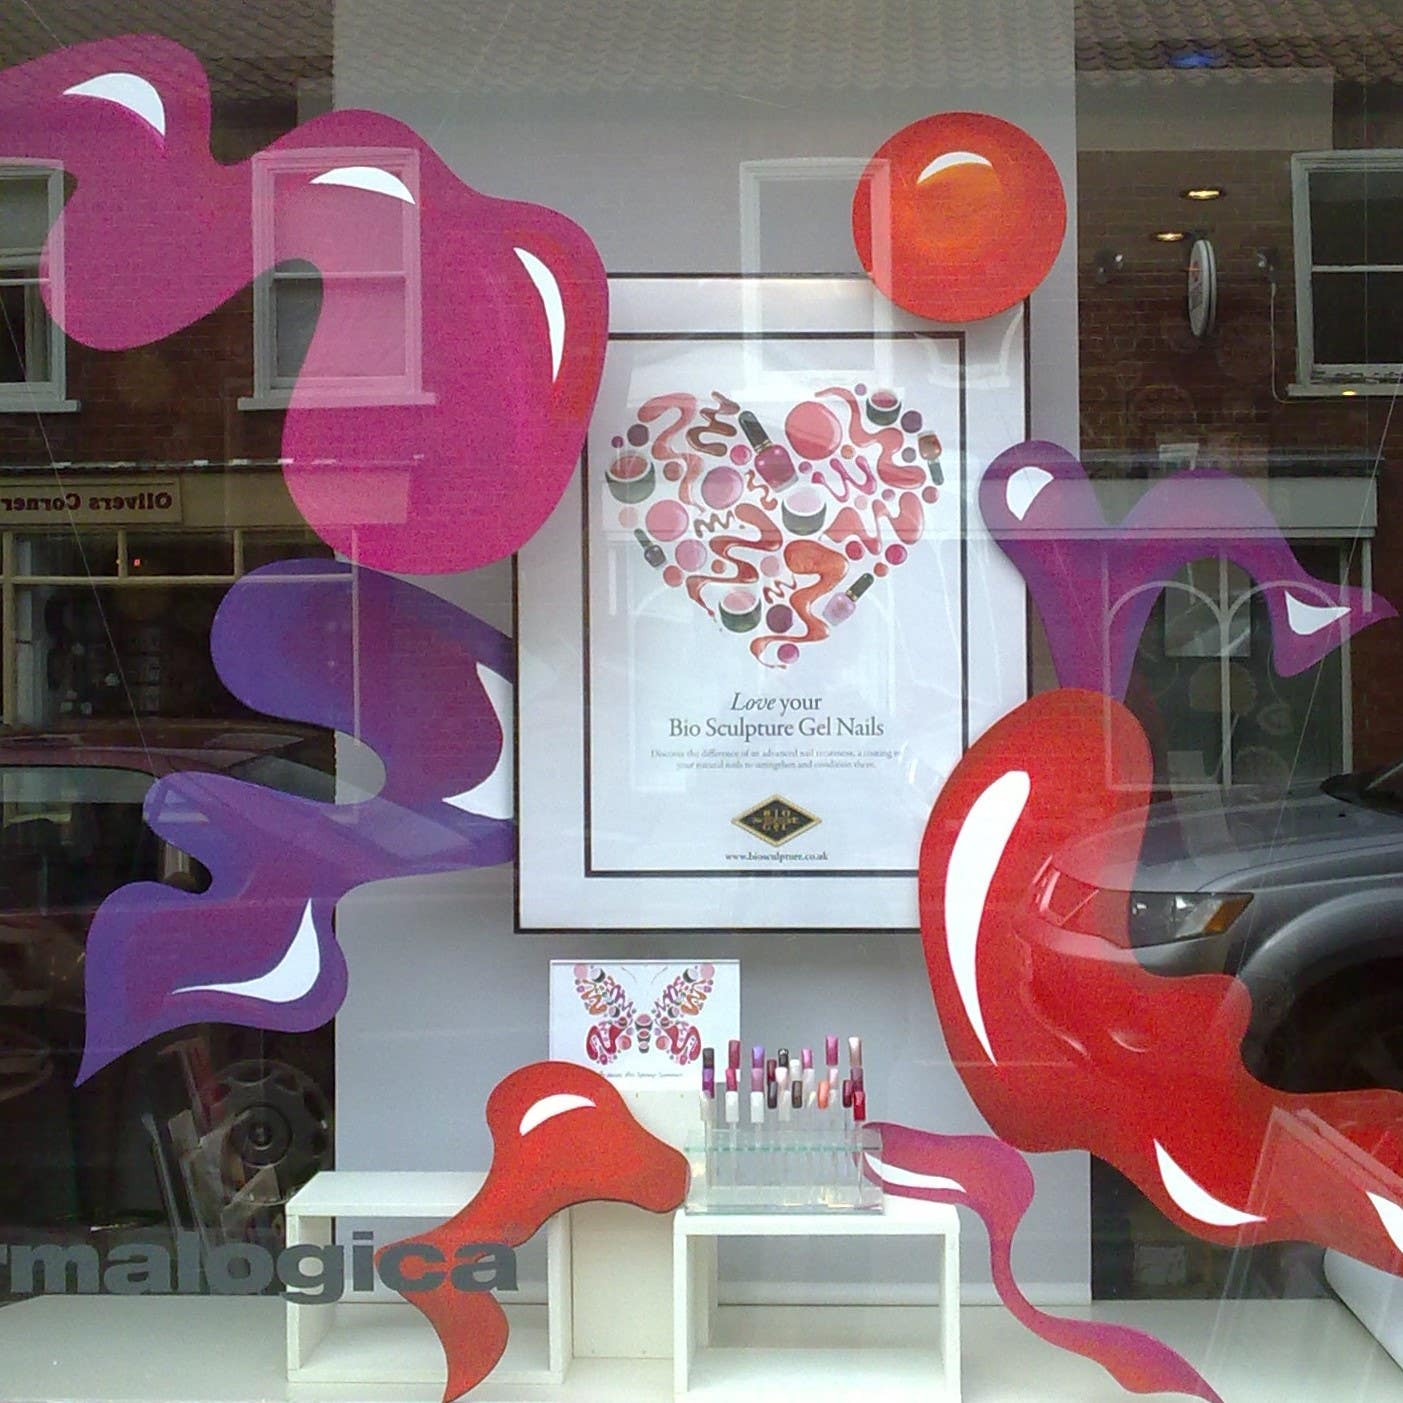 Gellish nails service window display - inspiration from poster and no product